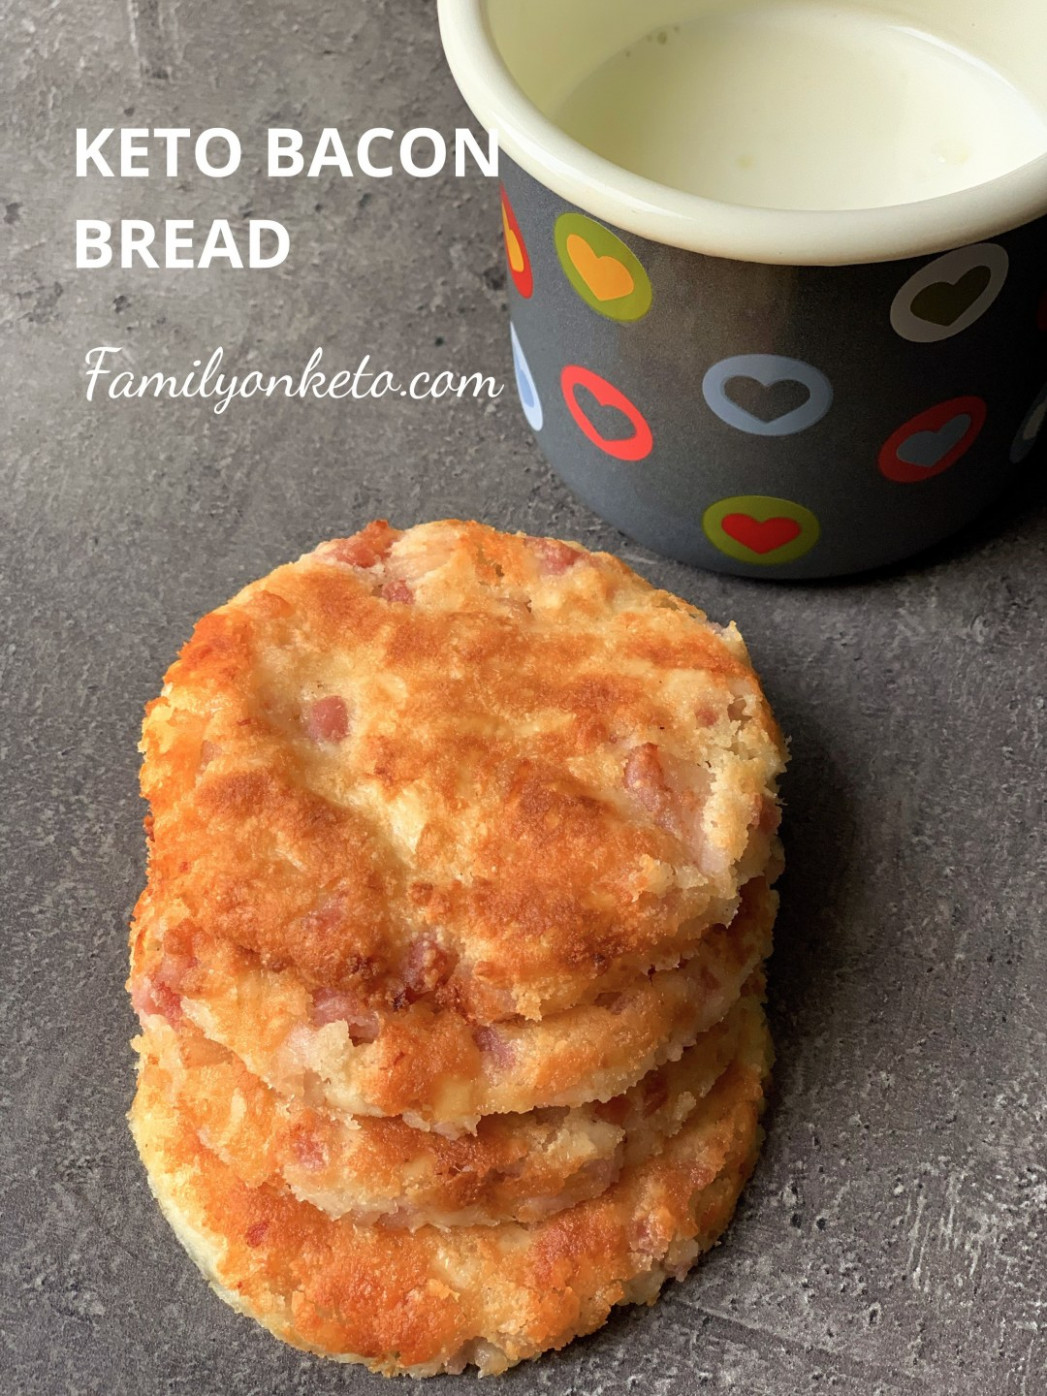 Keto bacon bread